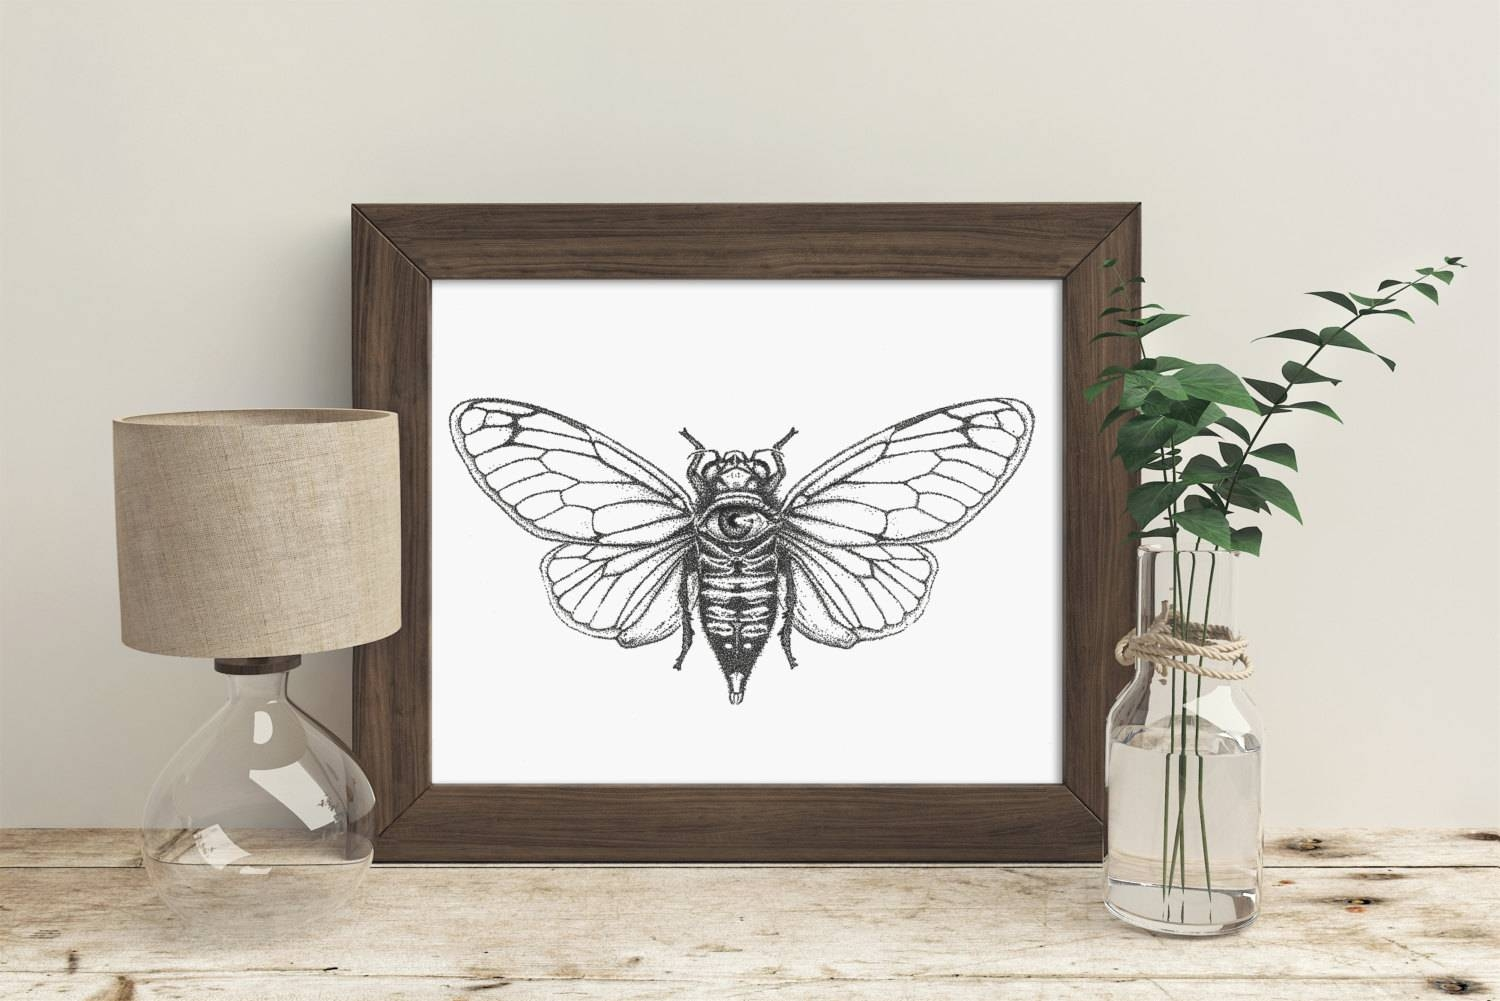 Trippy Wall Art Cicada Black And White Art Cool Wall Art Inside Current Insect Wall Art (View 7 of 30)